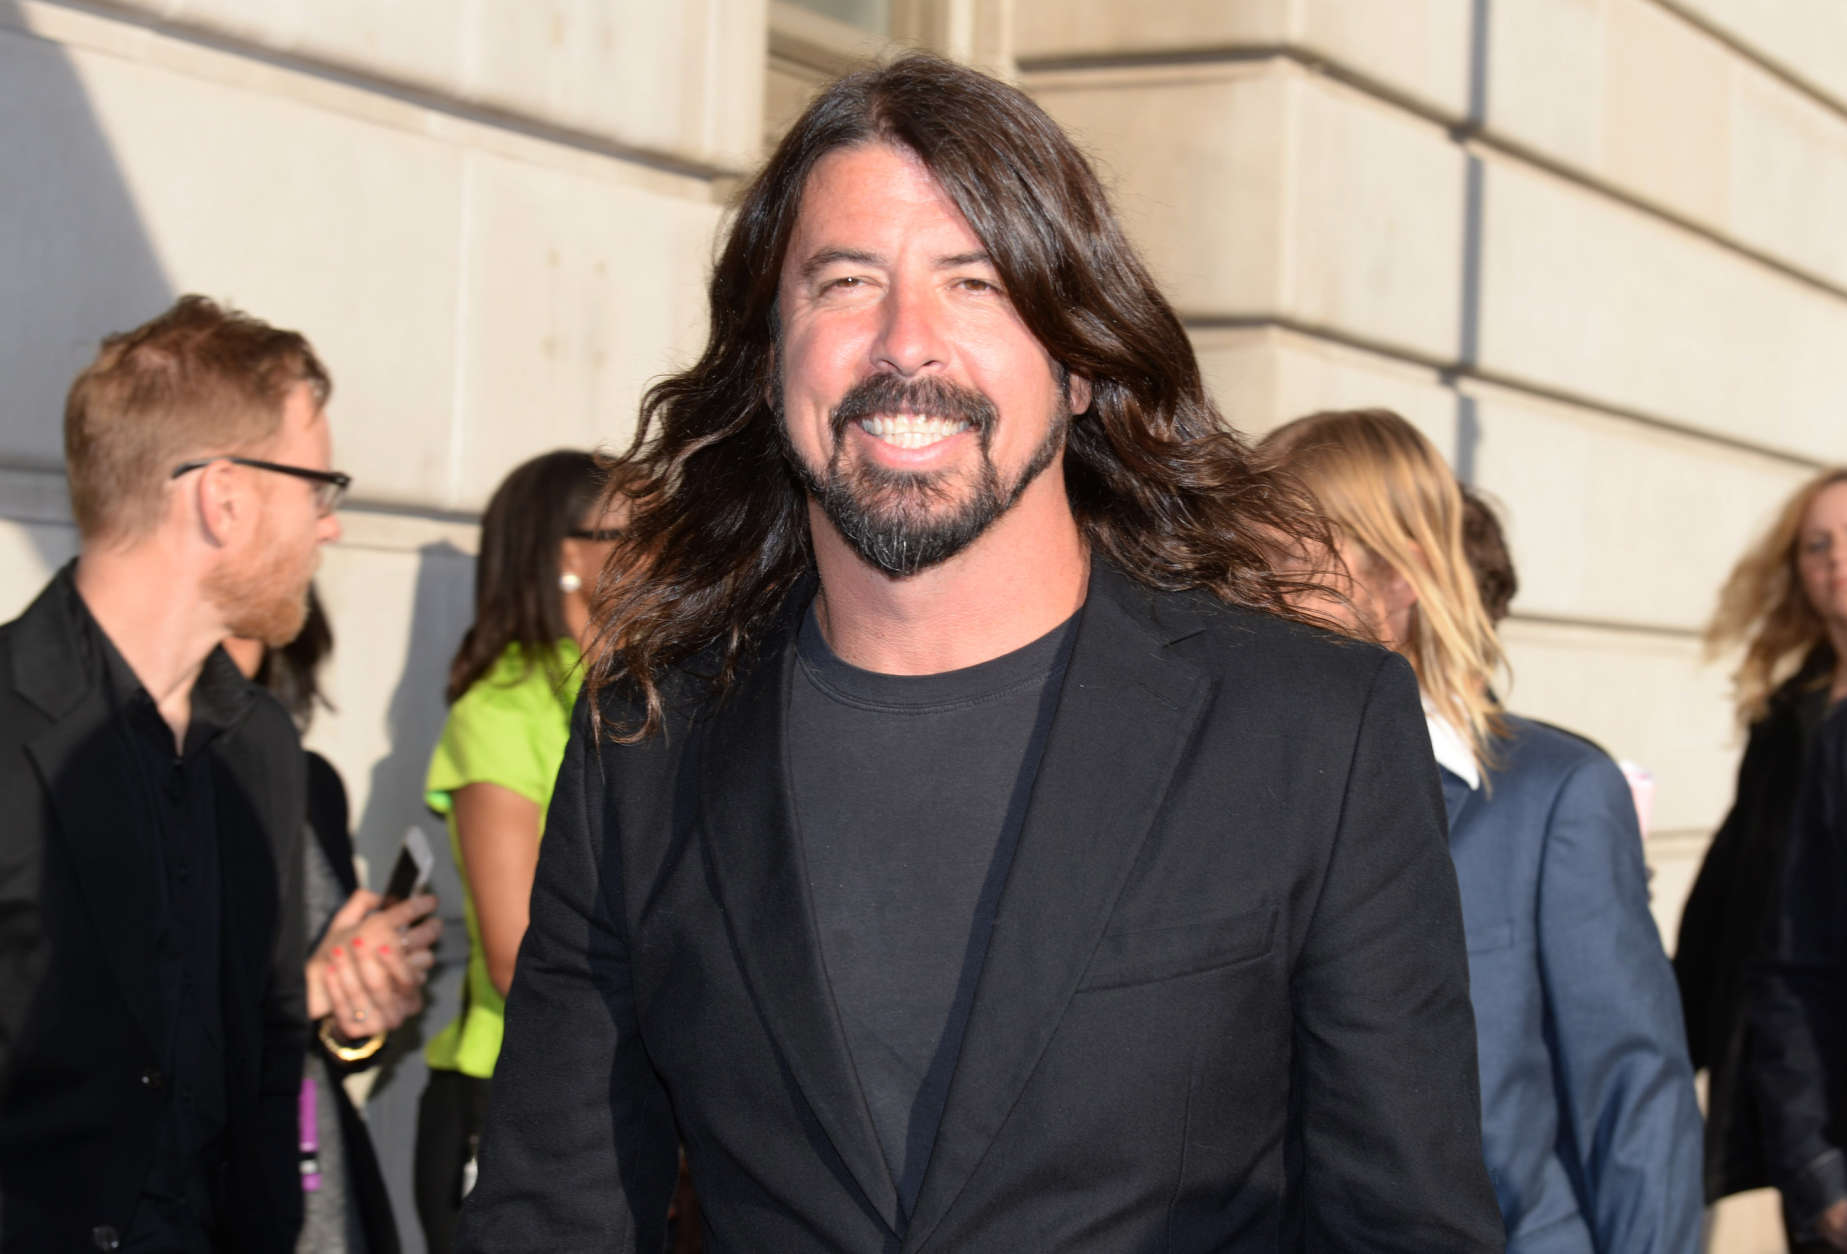 Dave Grohl arrives at the 2015 Rock and Roll Hall of Fame Induction Ceremony at Public Hall on Saturday, April 18, 2015, in Cleveland, Ohio. (Photo by Jason Miller/Invision/AP)